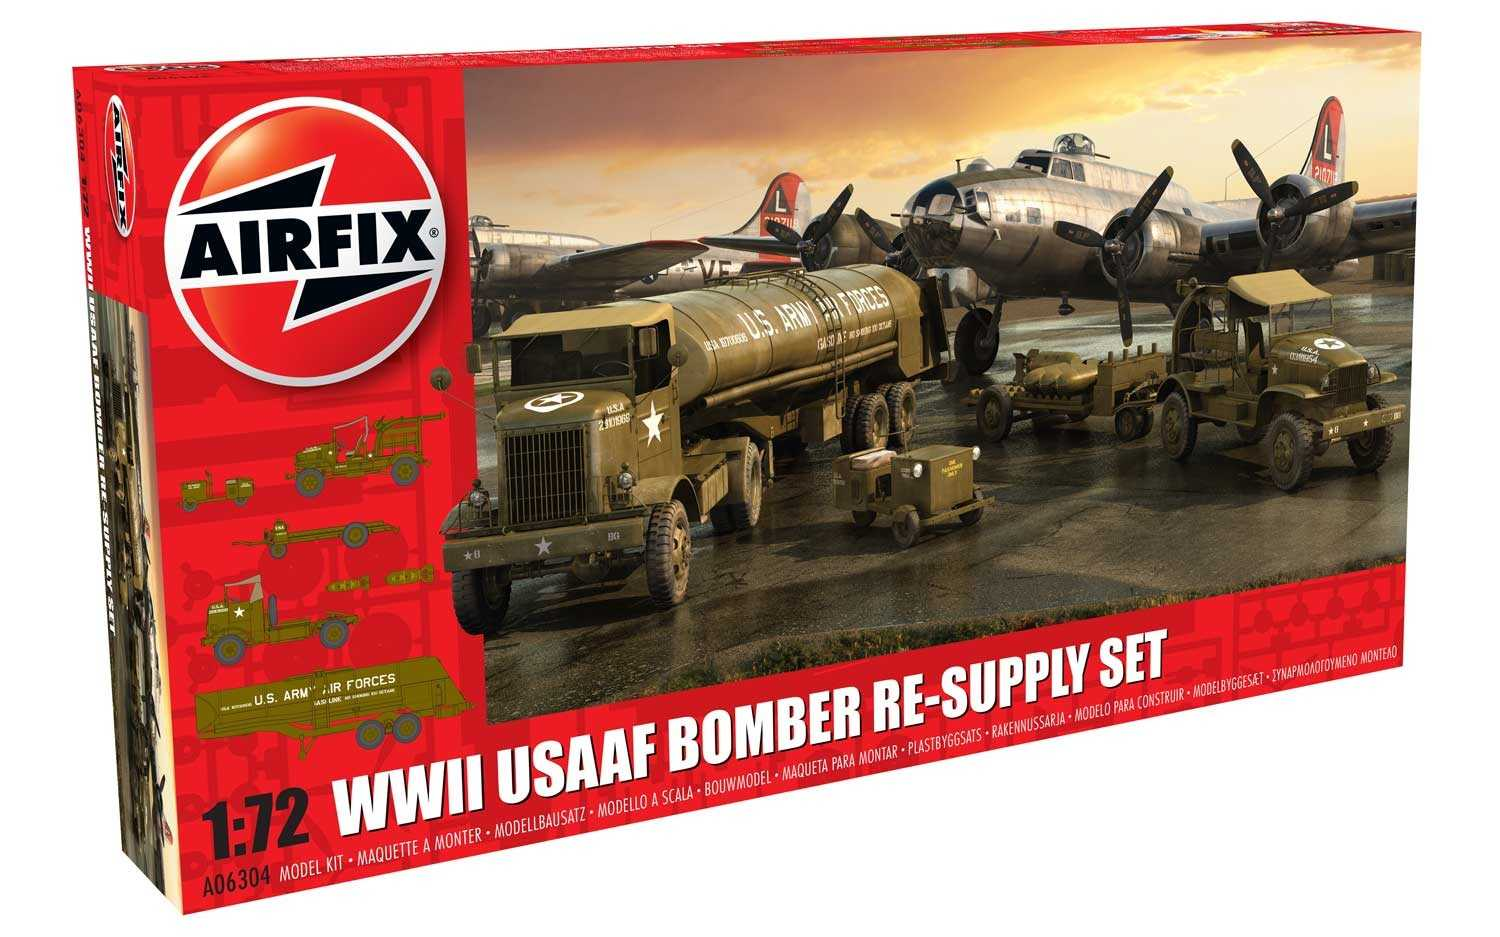 1:72 USAAF 8TH Airforce Bomber Resupply Set